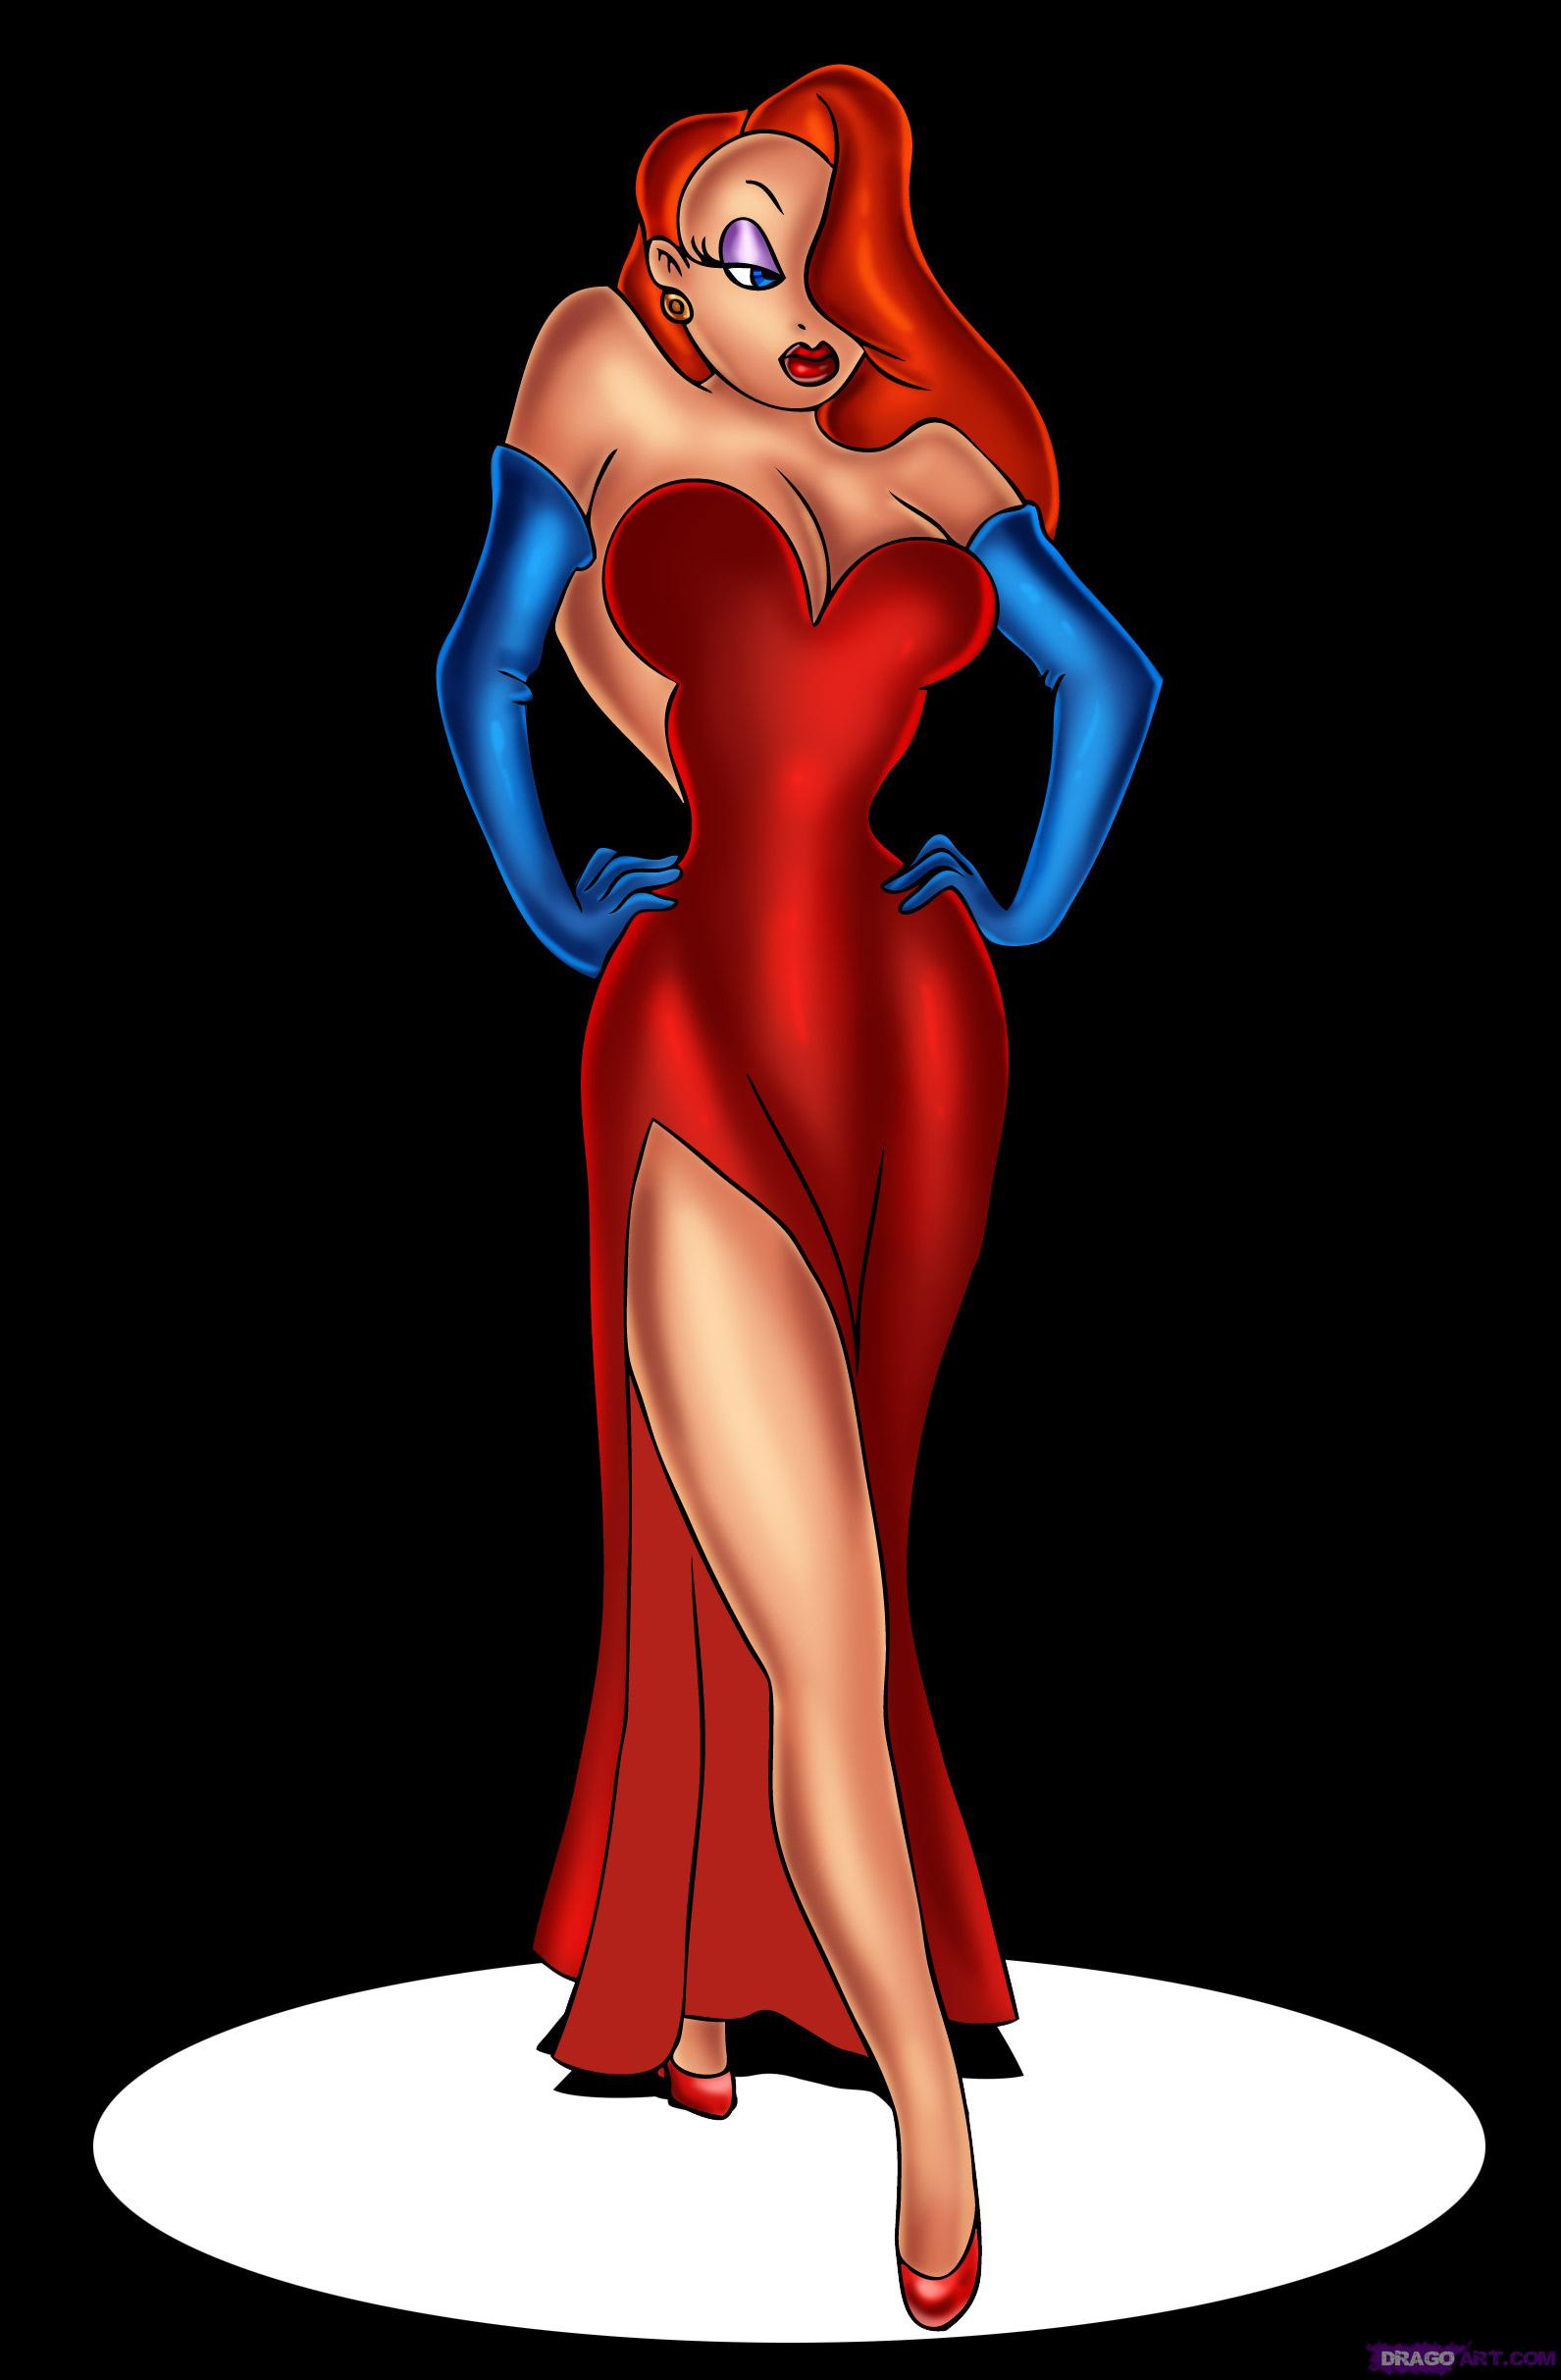 NewsFix posters as fictional characters  Jessica-rabbit-sex-33823